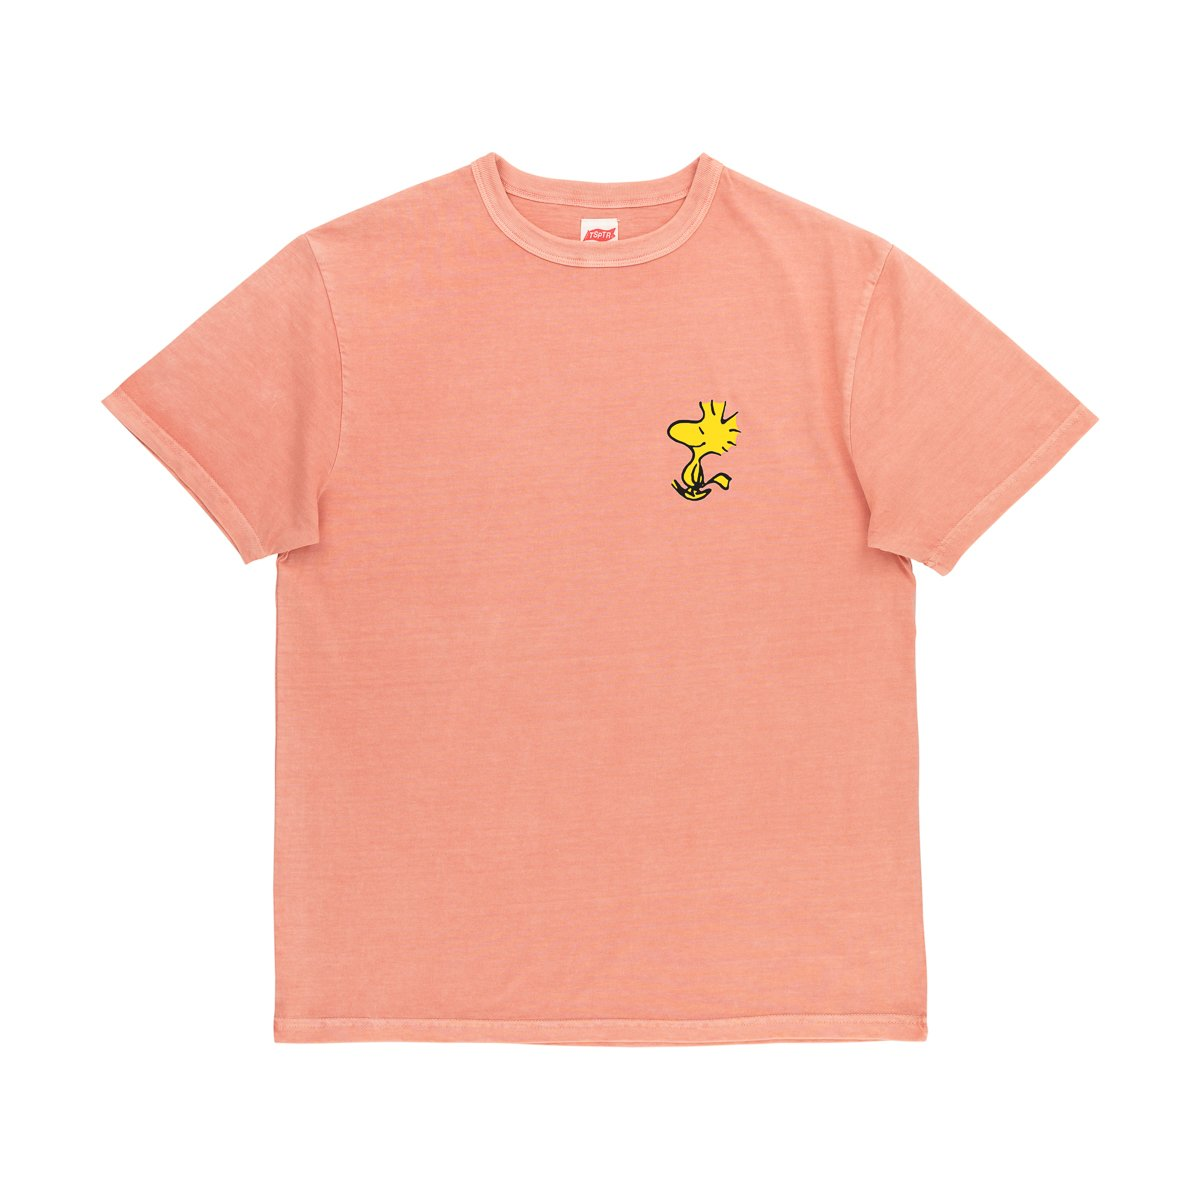 Surf's Up T-Shirt in Pink